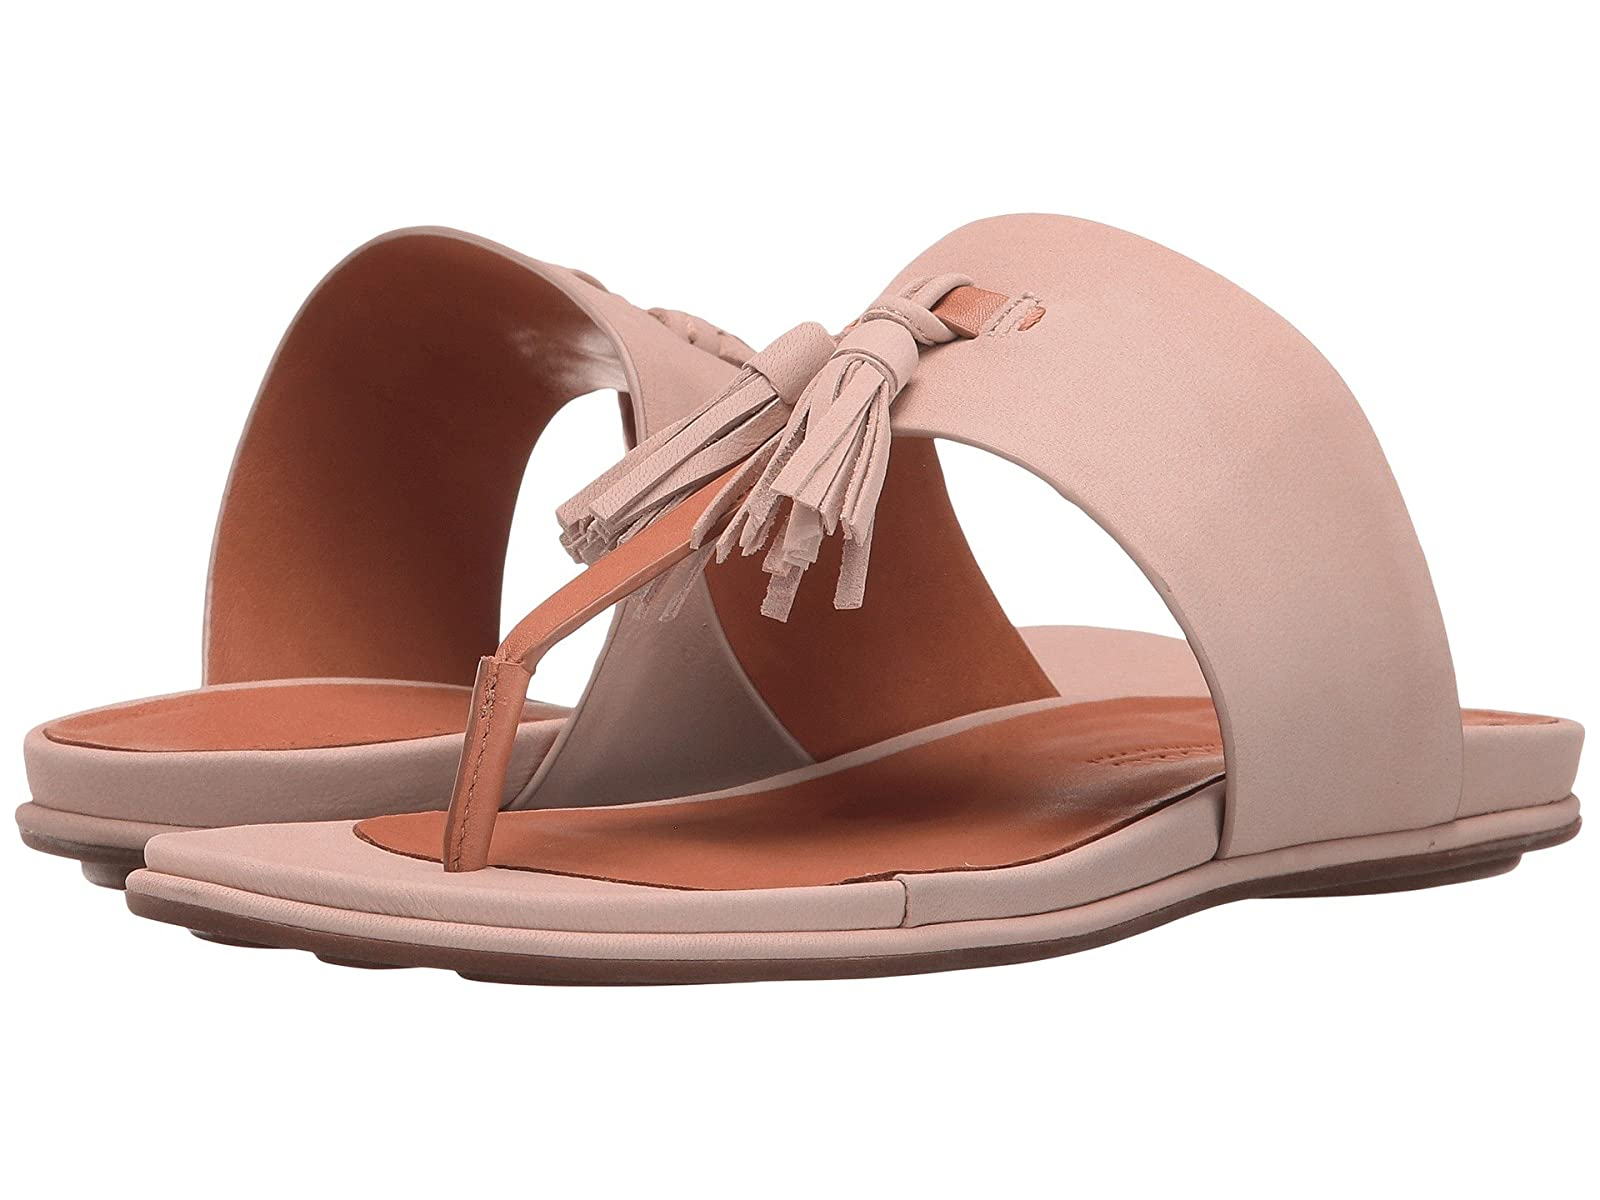 Gentle Souls by Kenneth Cole OttieCheap and distinctive eye-catching shoes